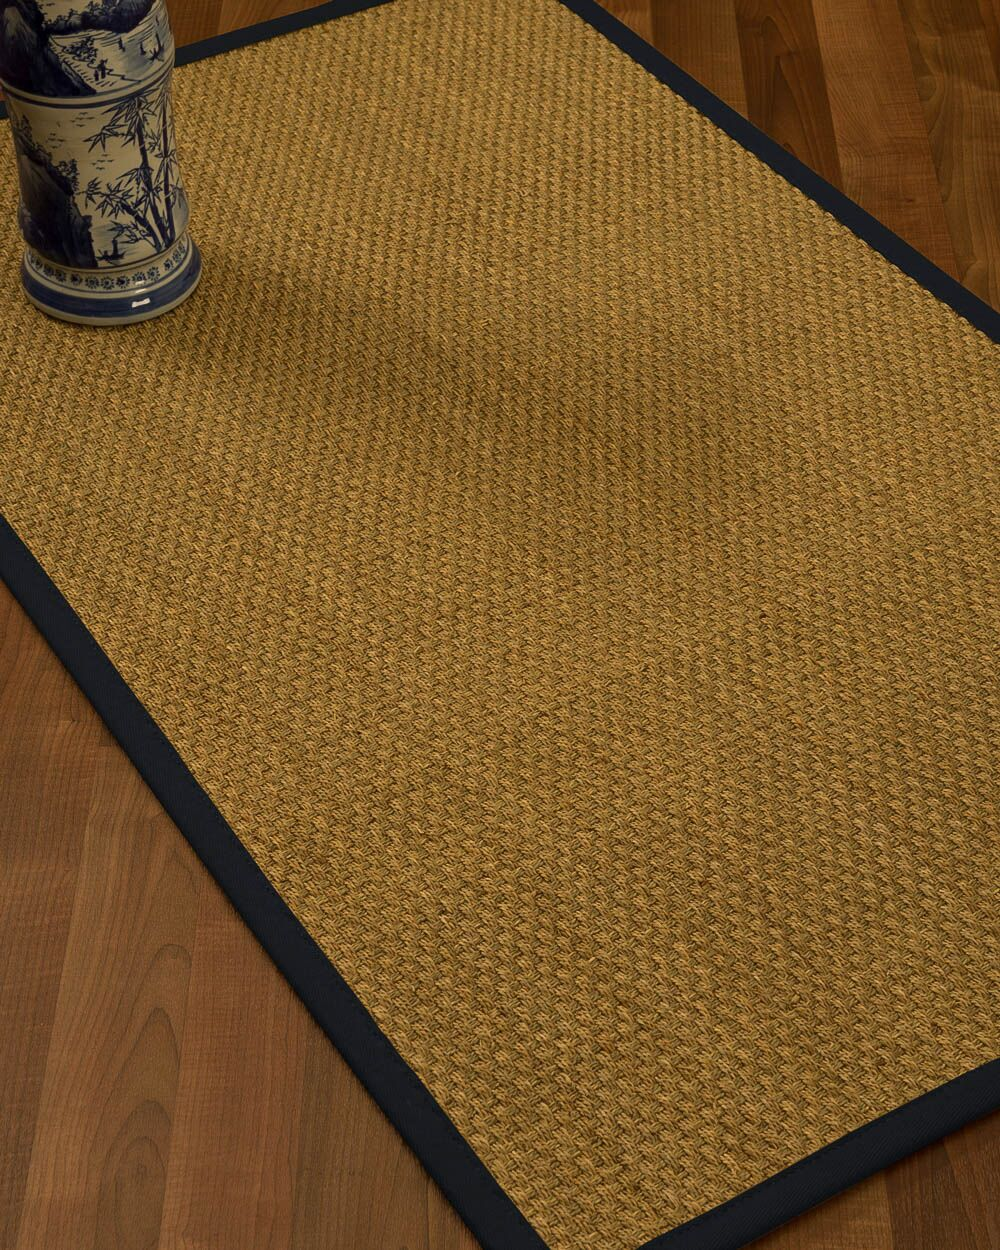 Rosabel Border Hand-Woven Beige/Midnight Blue Area Rug Rug Size: Rectangle 9' x 12', Rug Pad Included: Yes